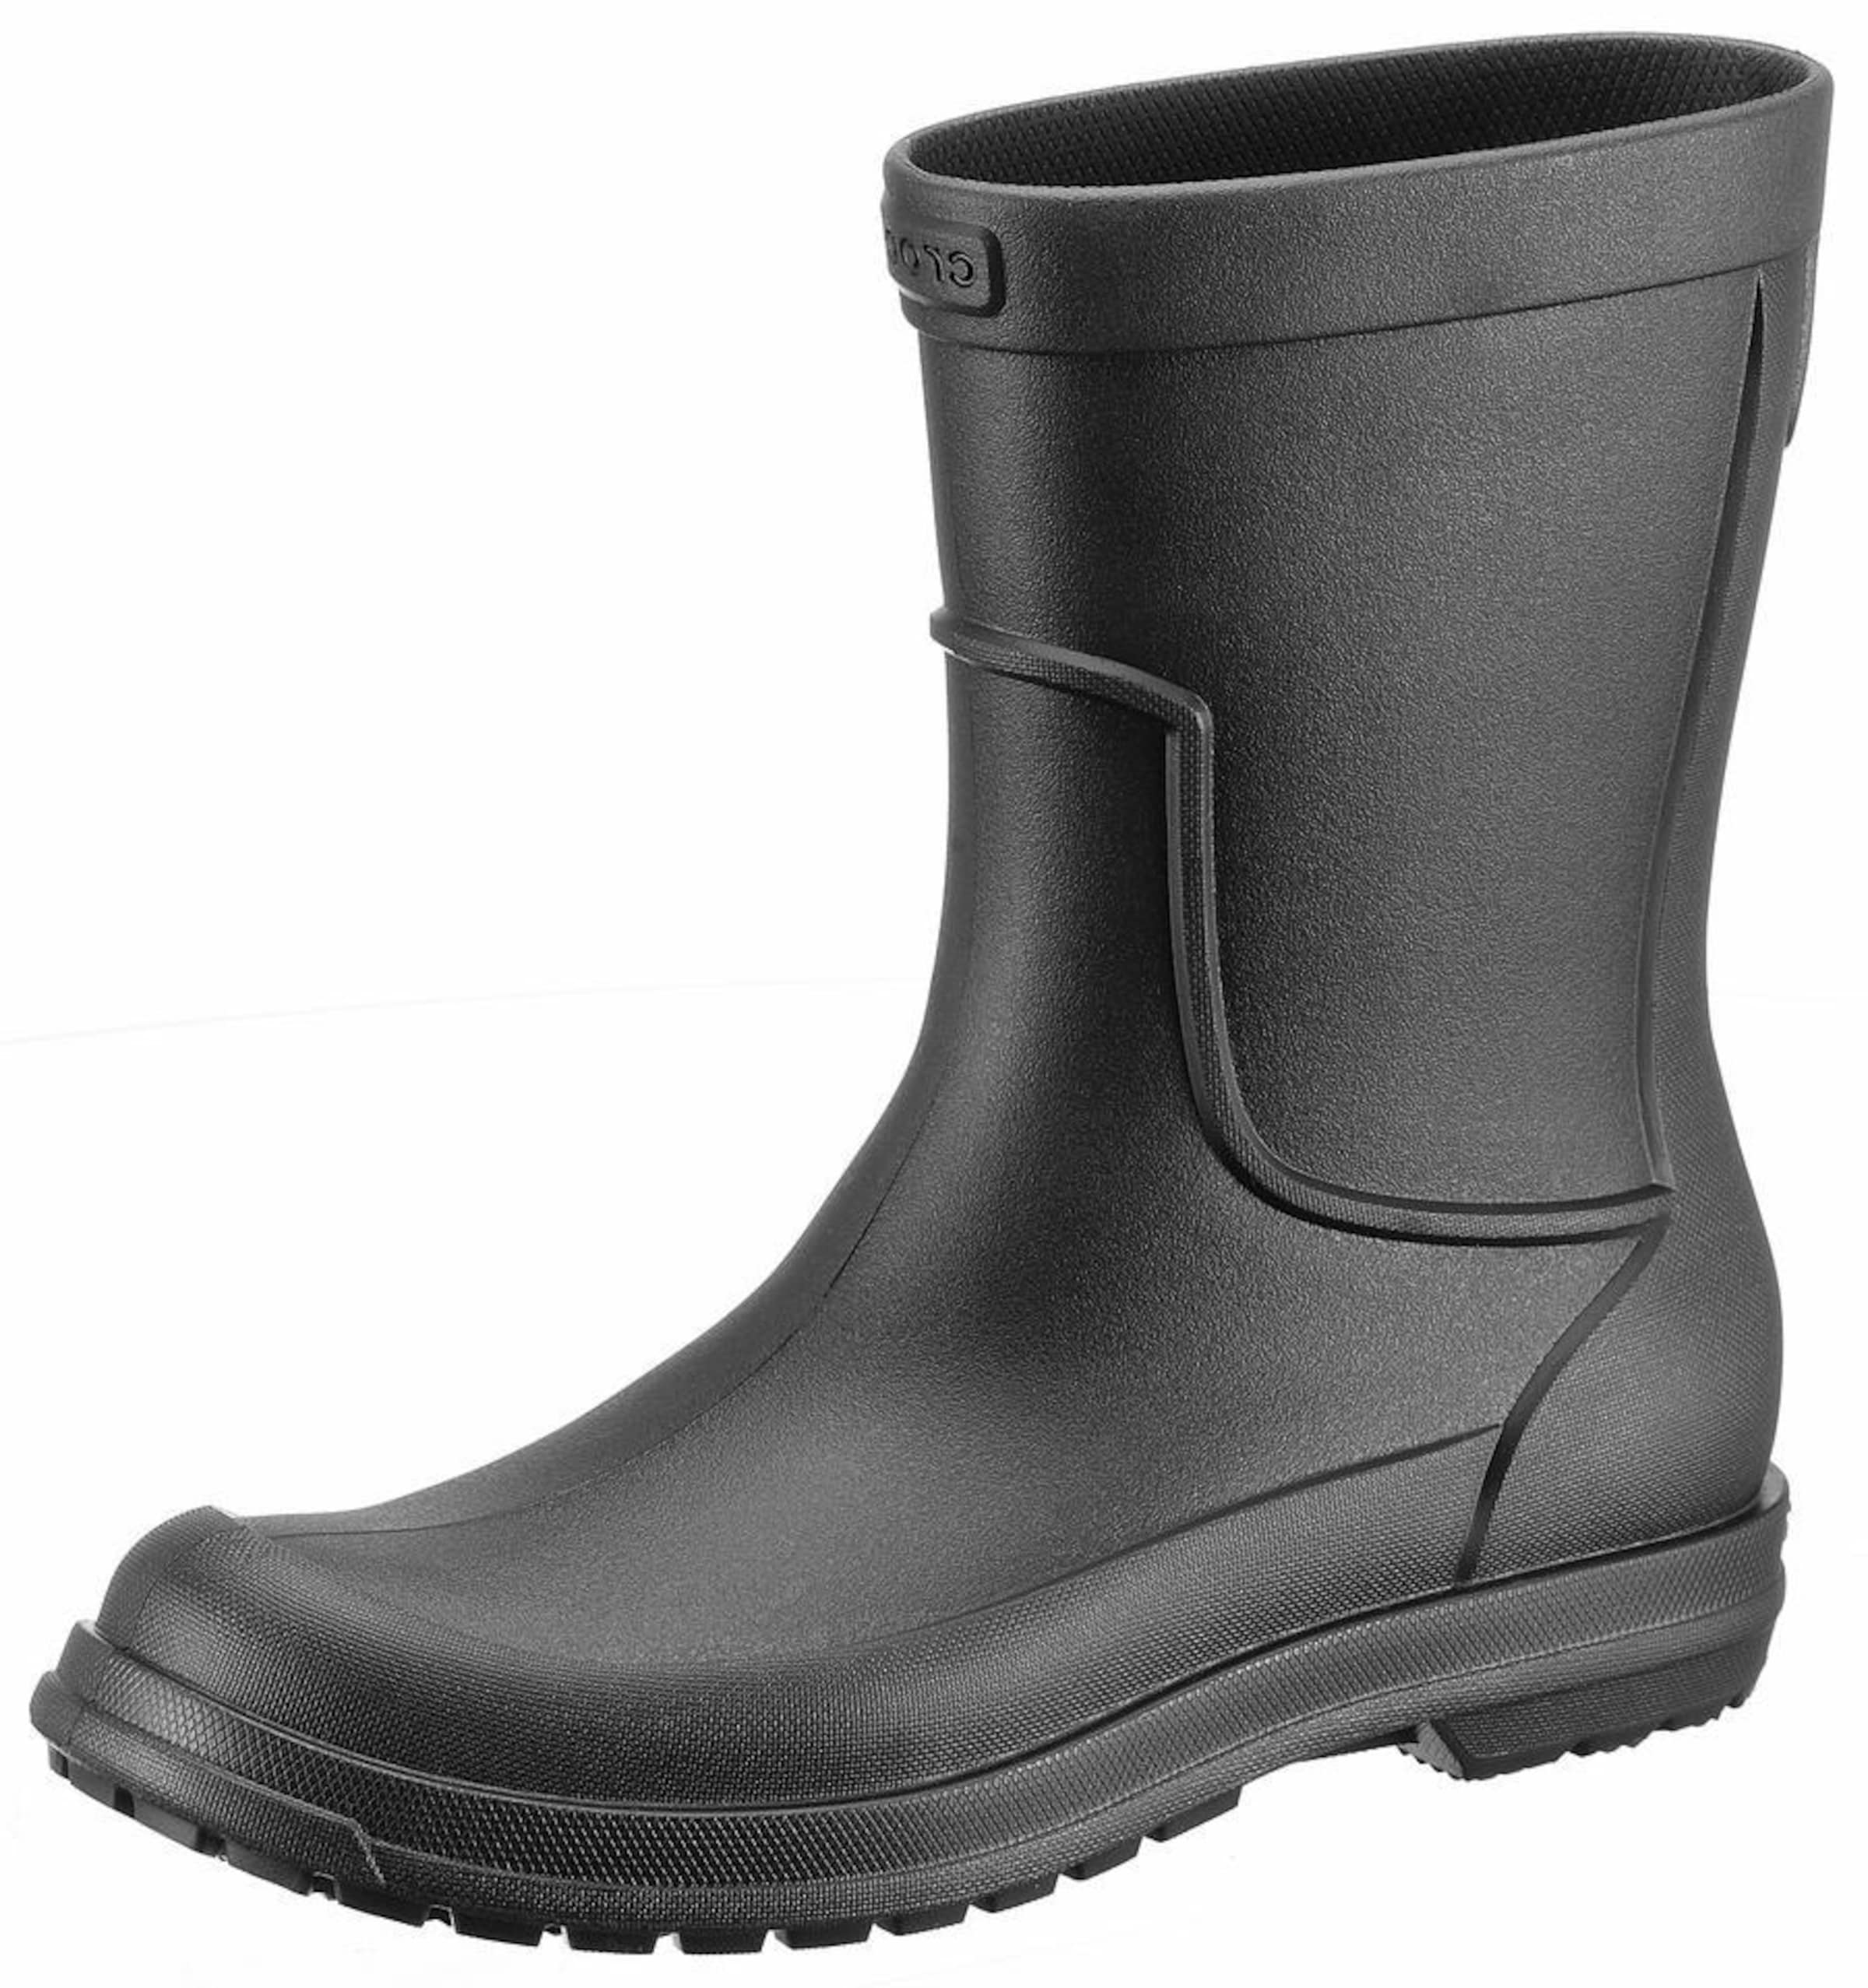 Gummistiefel Cast Boot Rain M' In Schwarz Crocs 'all IY2H9WED